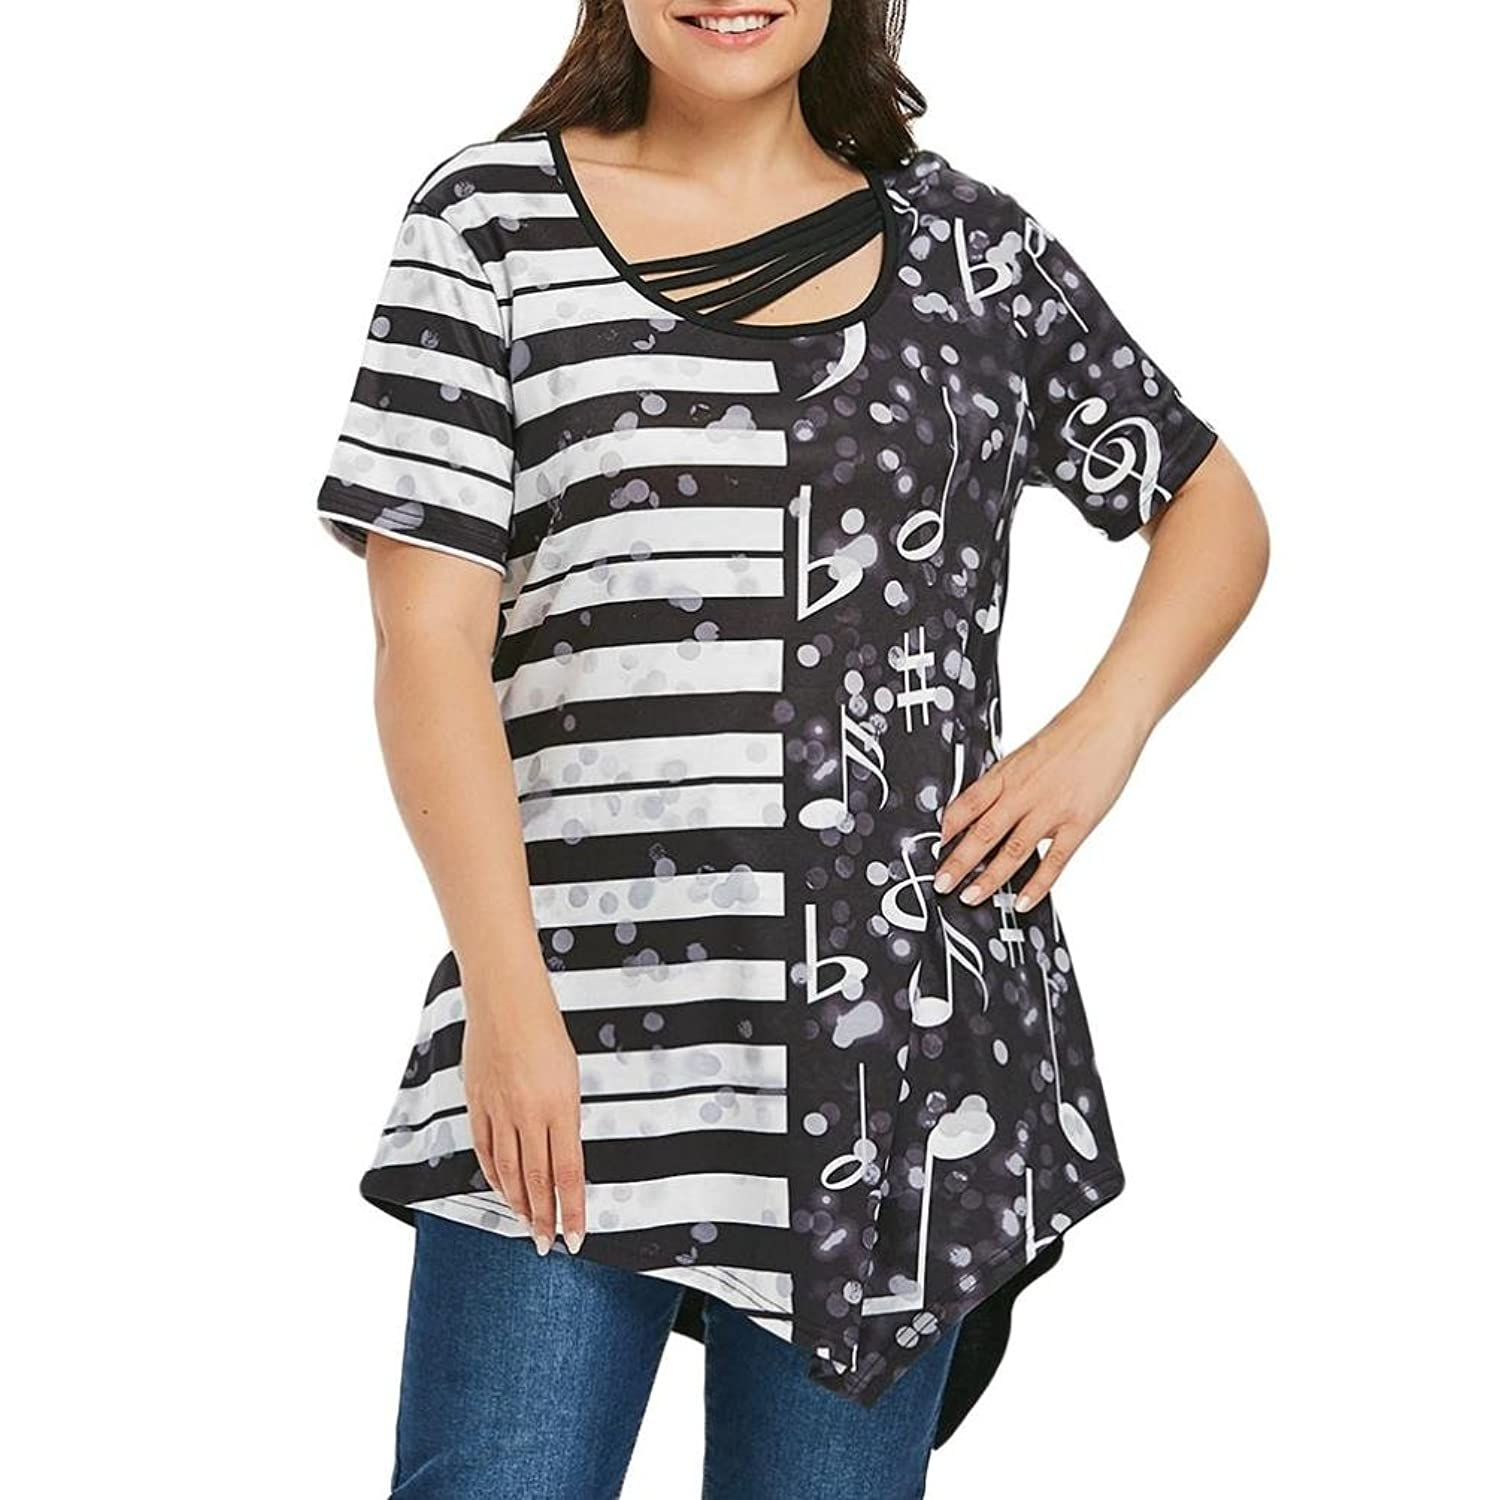 52548349a5b Top3  Misaky Women s Plus Size Tops Short Sleeve Music Note Scoop Neck T- Shirts. Wholesale Price 3.85